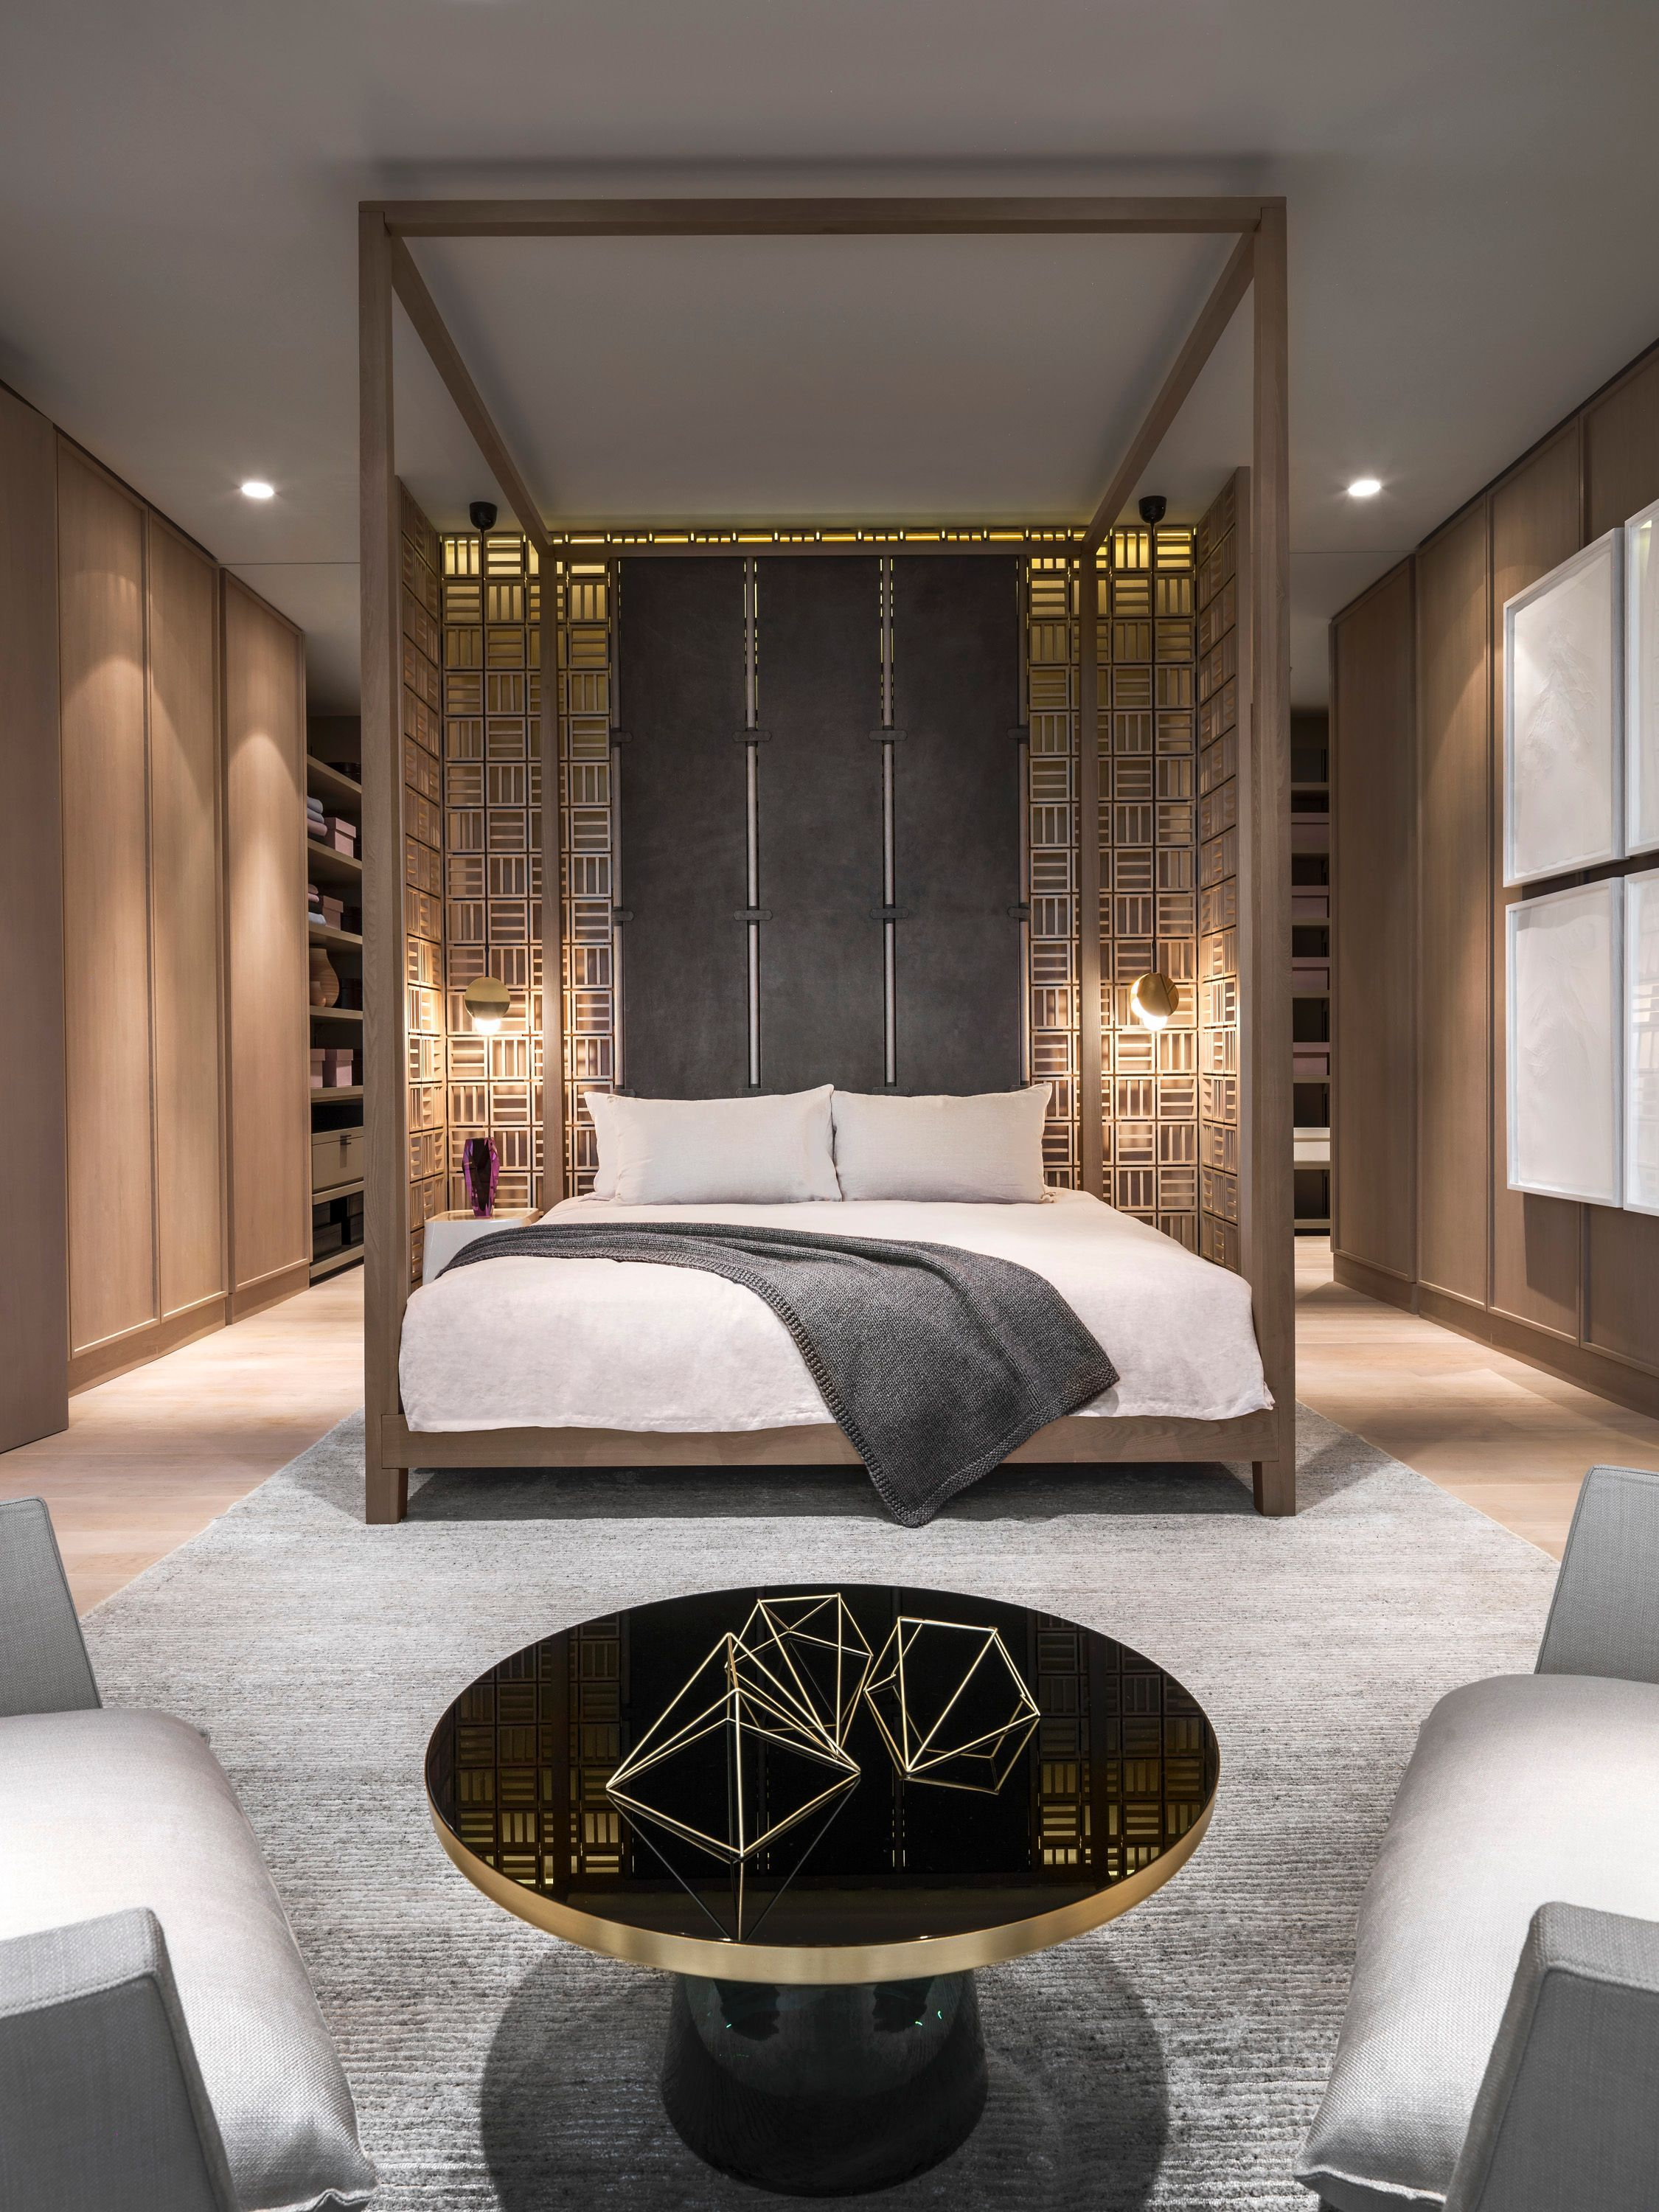 Best interior design contemporary modern bedroom master decor also pin by clemence tengniuc on dhe hills villa  rh pinterest